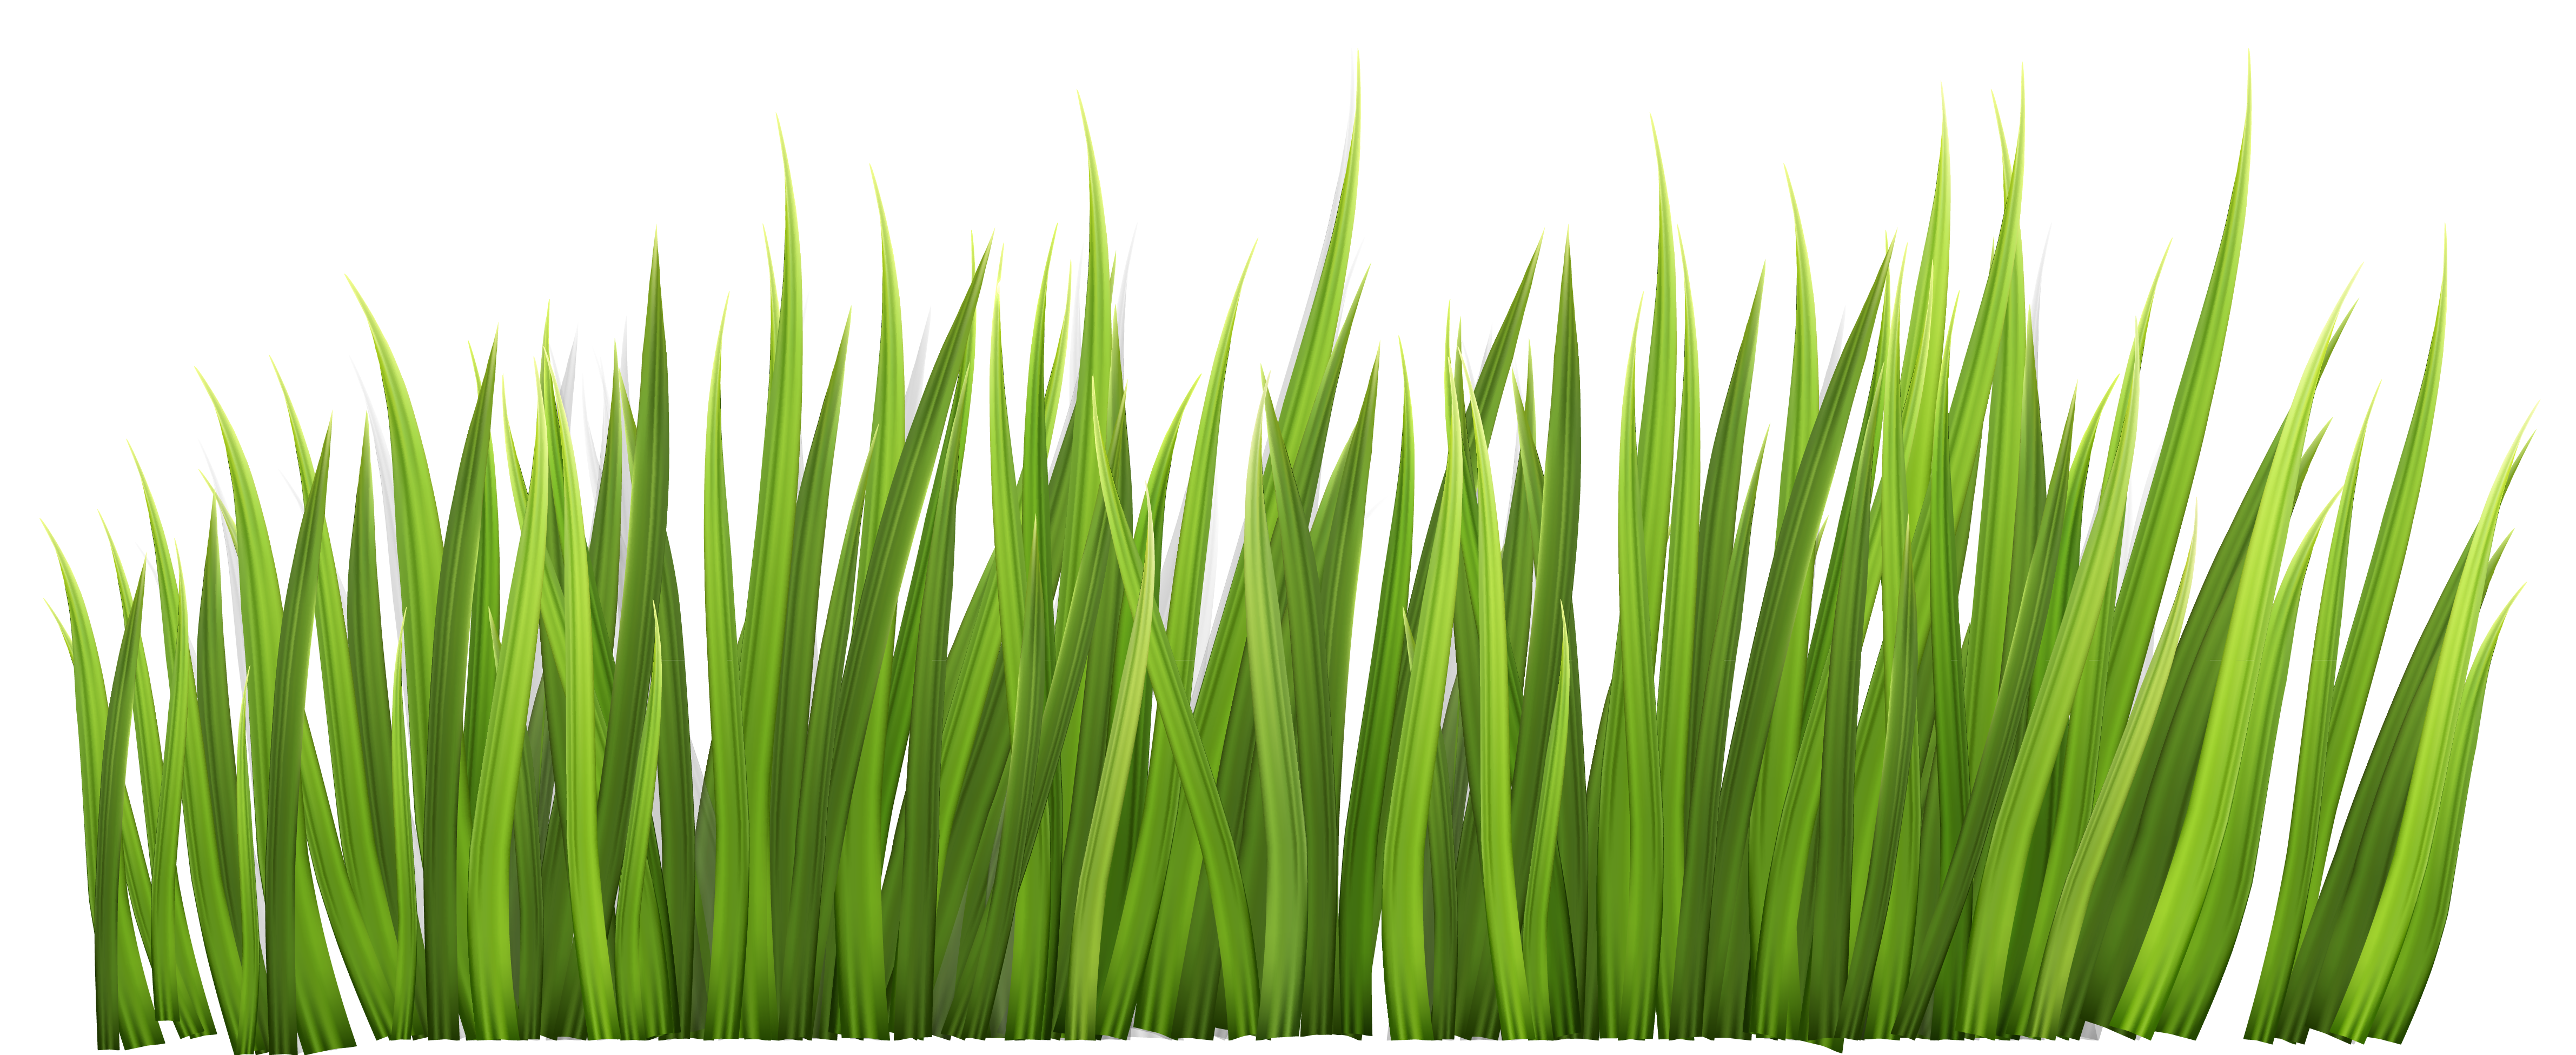 Safari pinterest grasses clip. Poppy clipart green grass flower